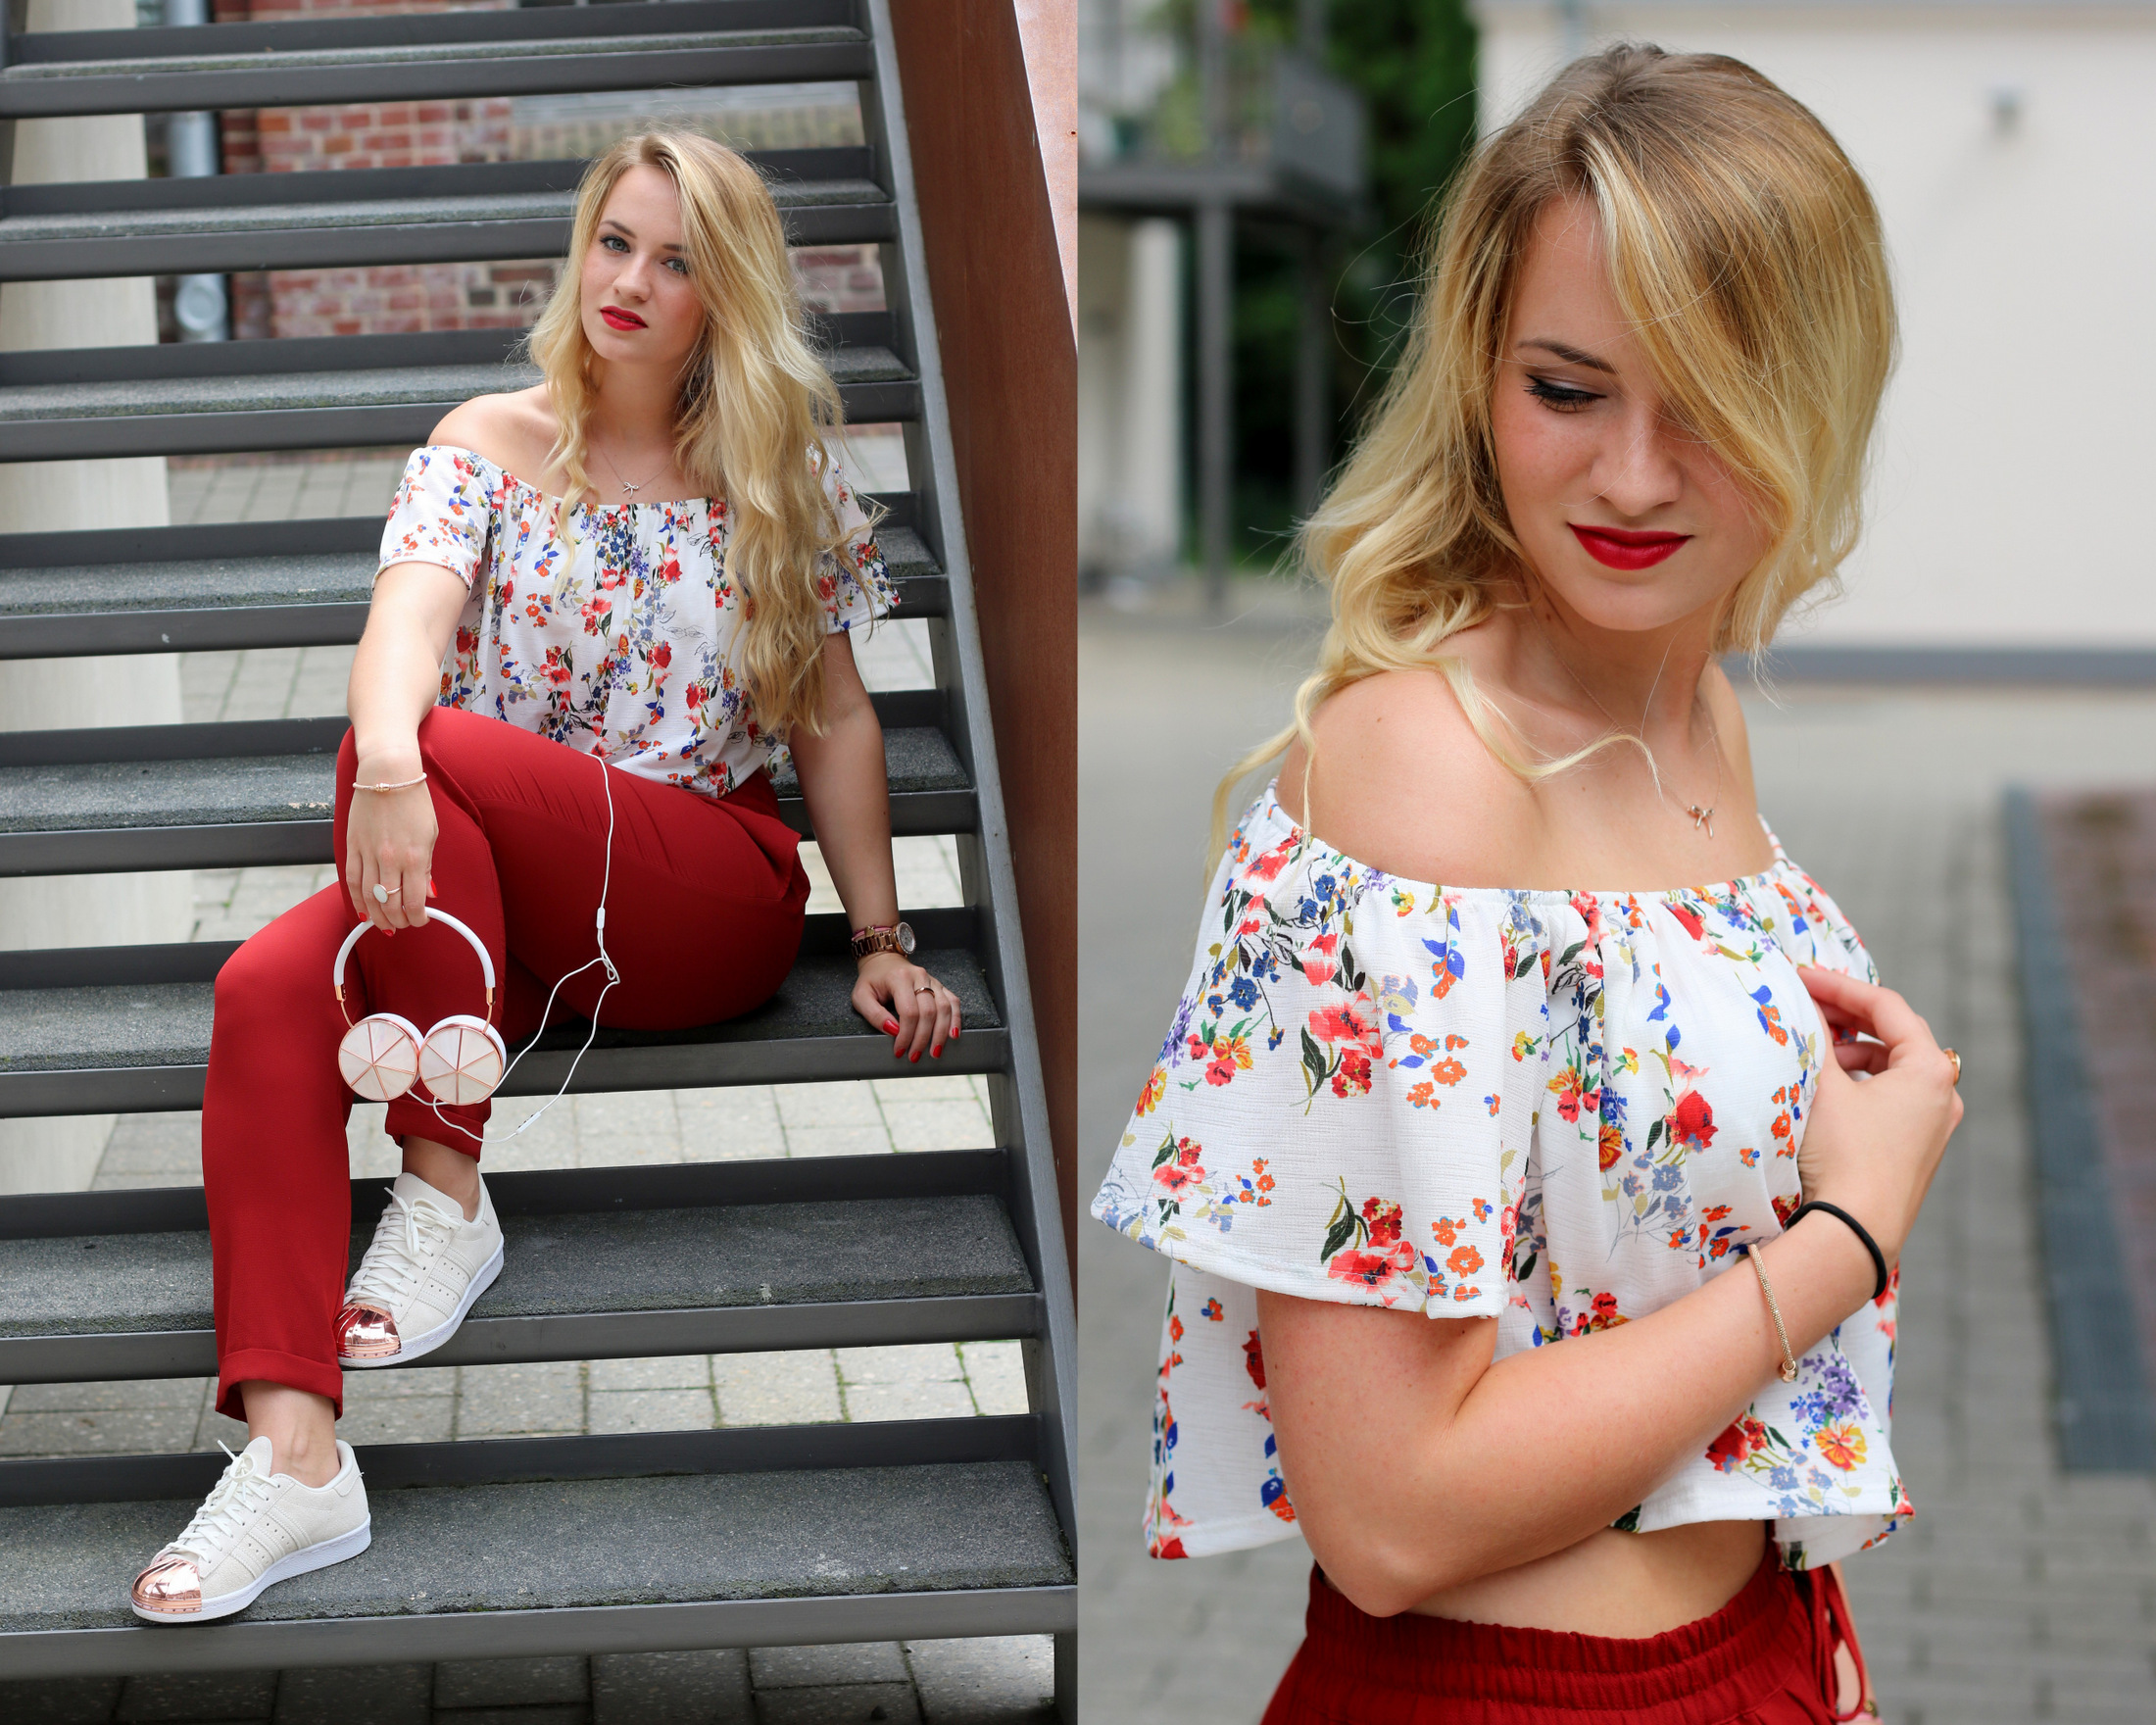 frends-headphones-kopfhörer-audio-musik-music-outfit-summer-early-look-zara-mrsbrightside (14)